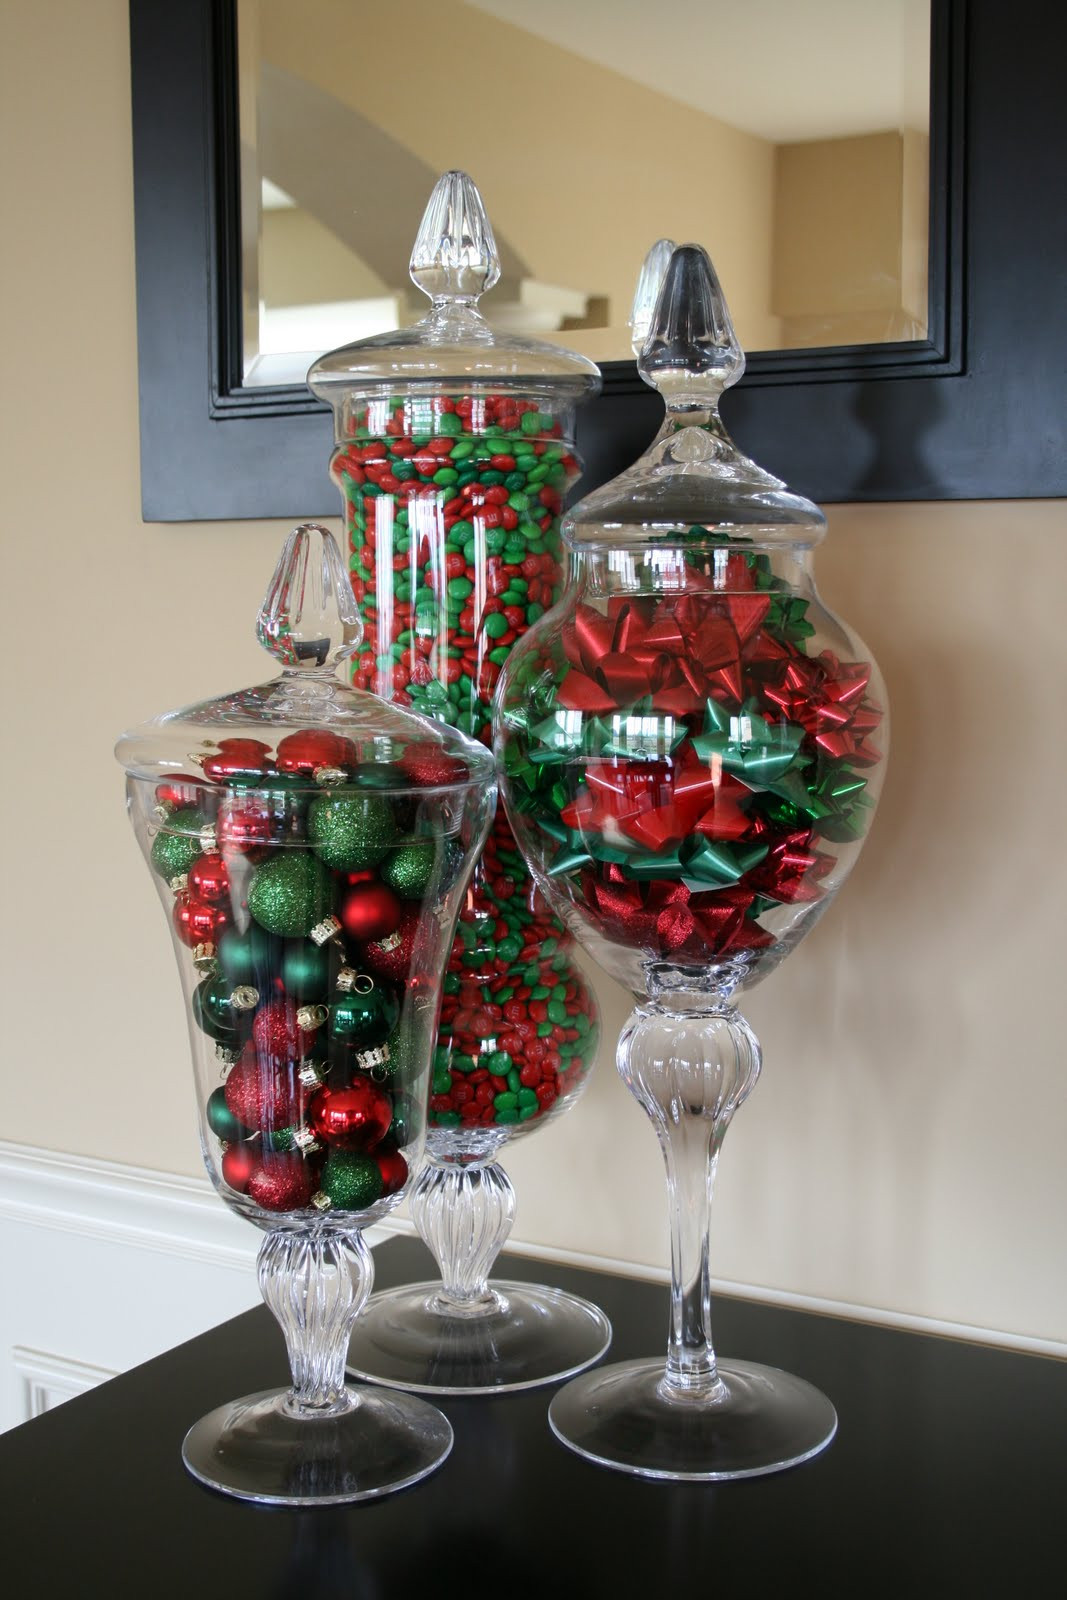 Christmas Candy Decorations  30 Cute & Creative Christmas Decorating Ideas